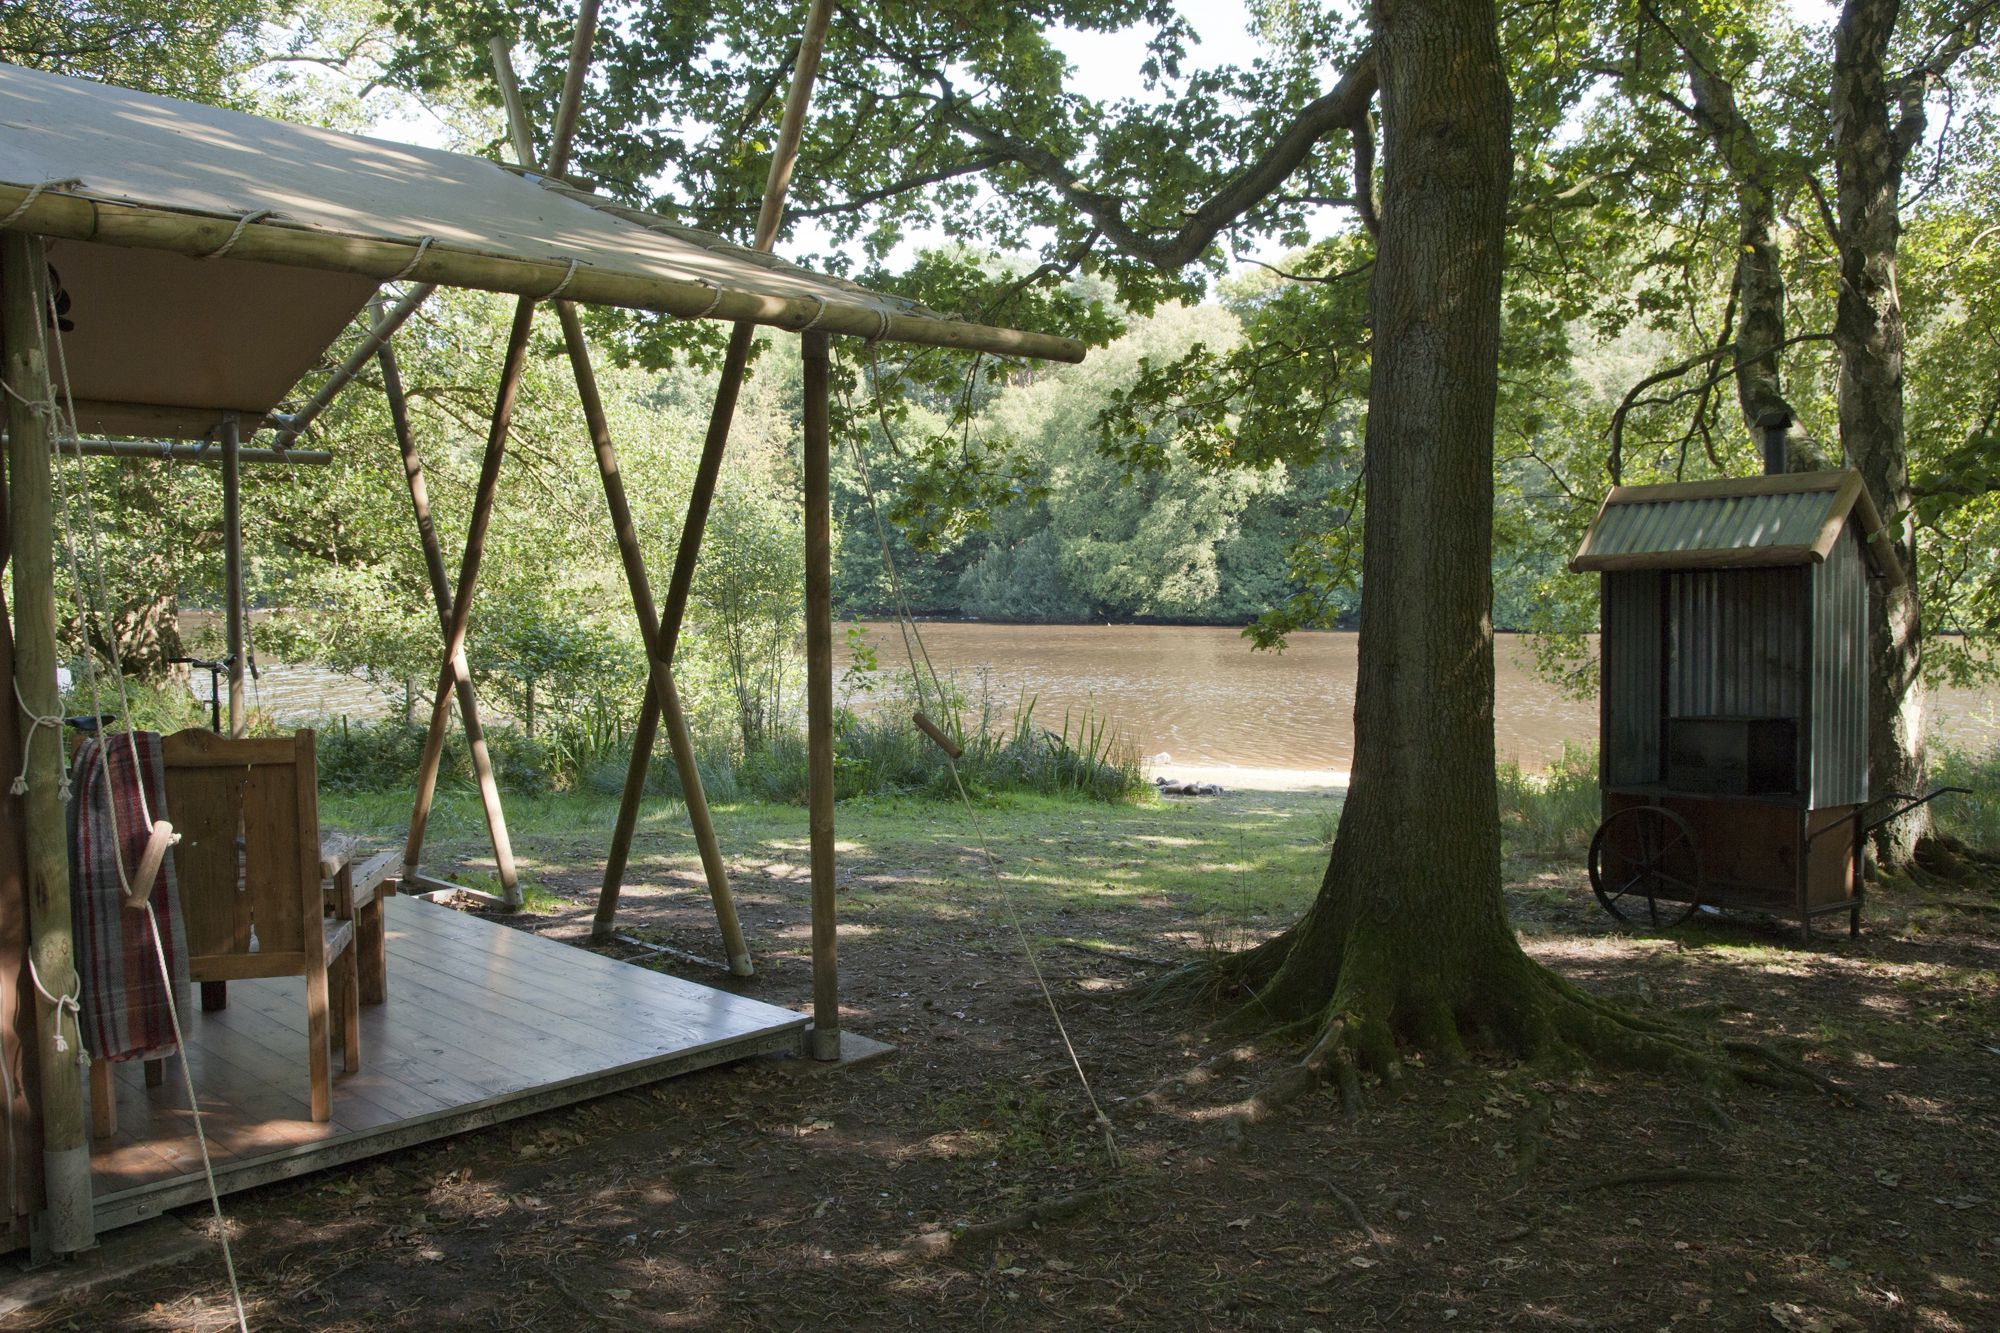 Forest of bowland glamping